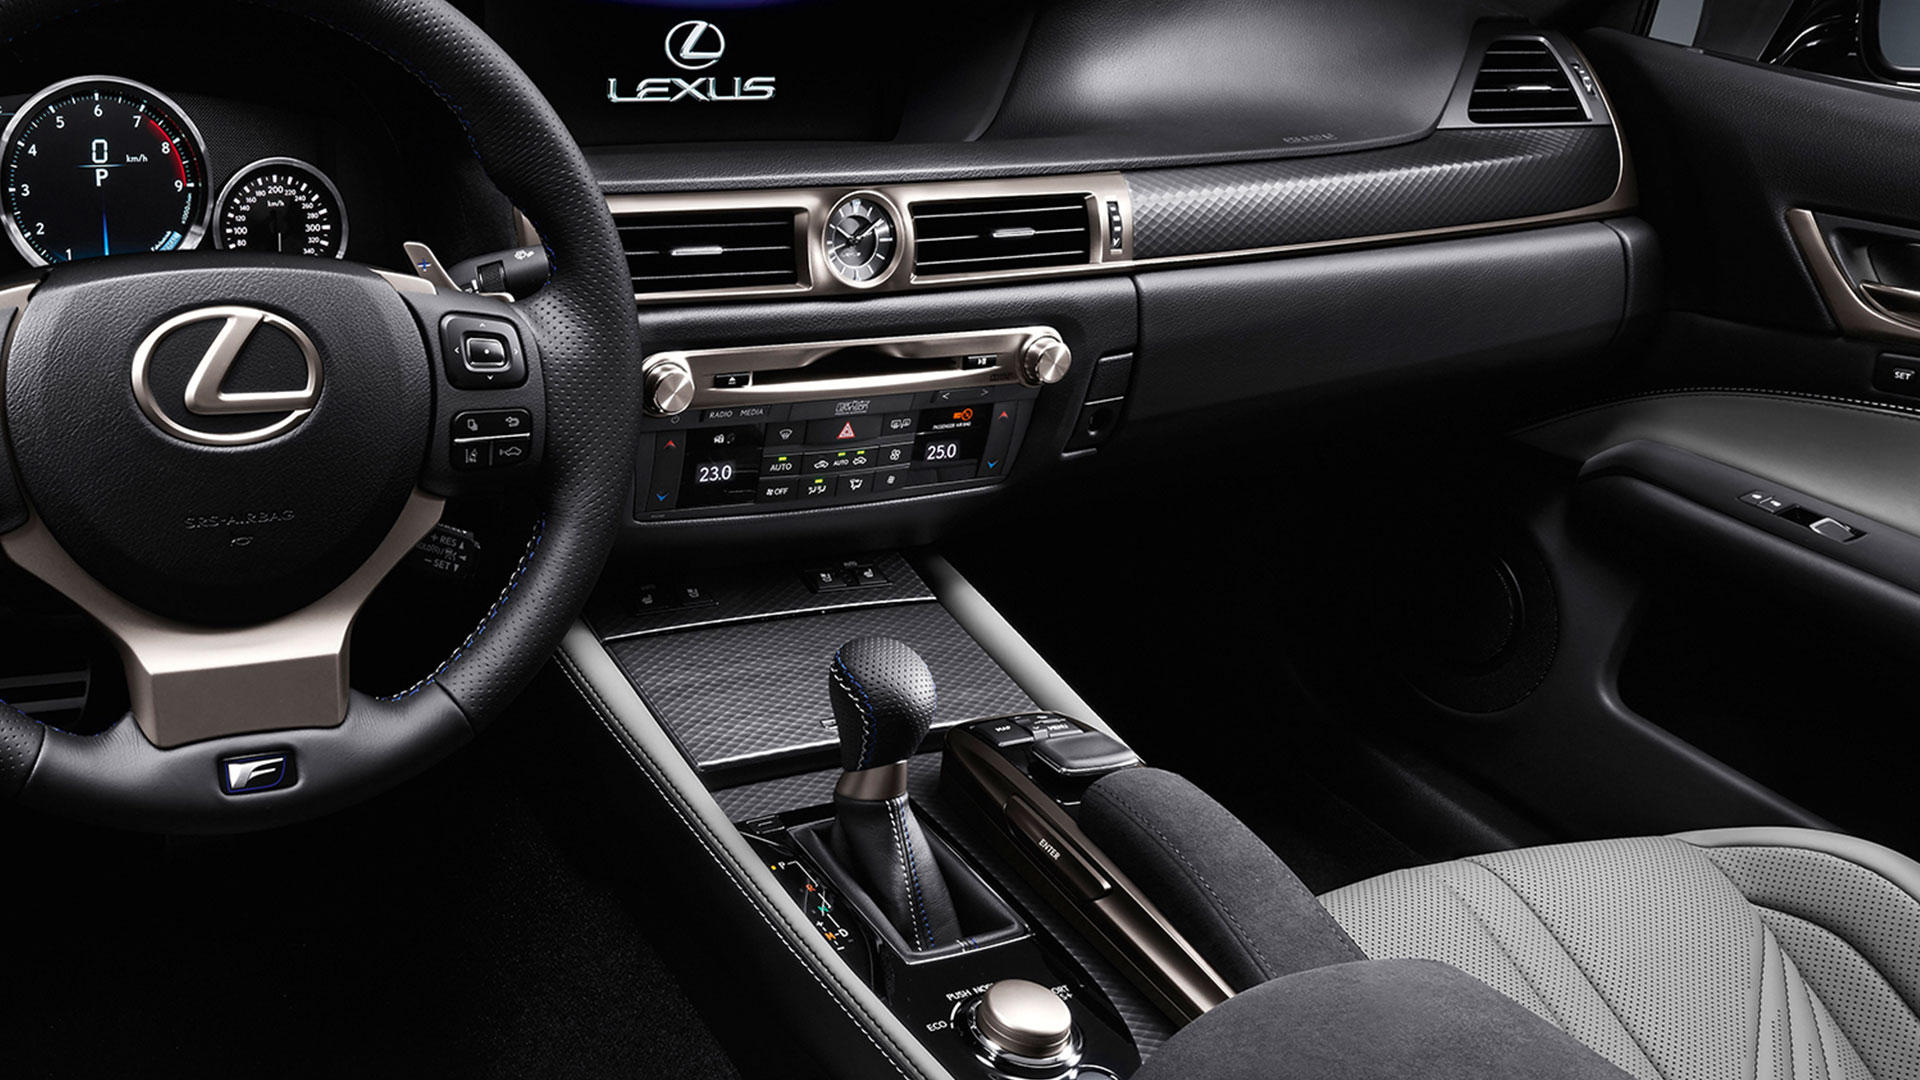 2017 lexus gs f features 3 zone climate control